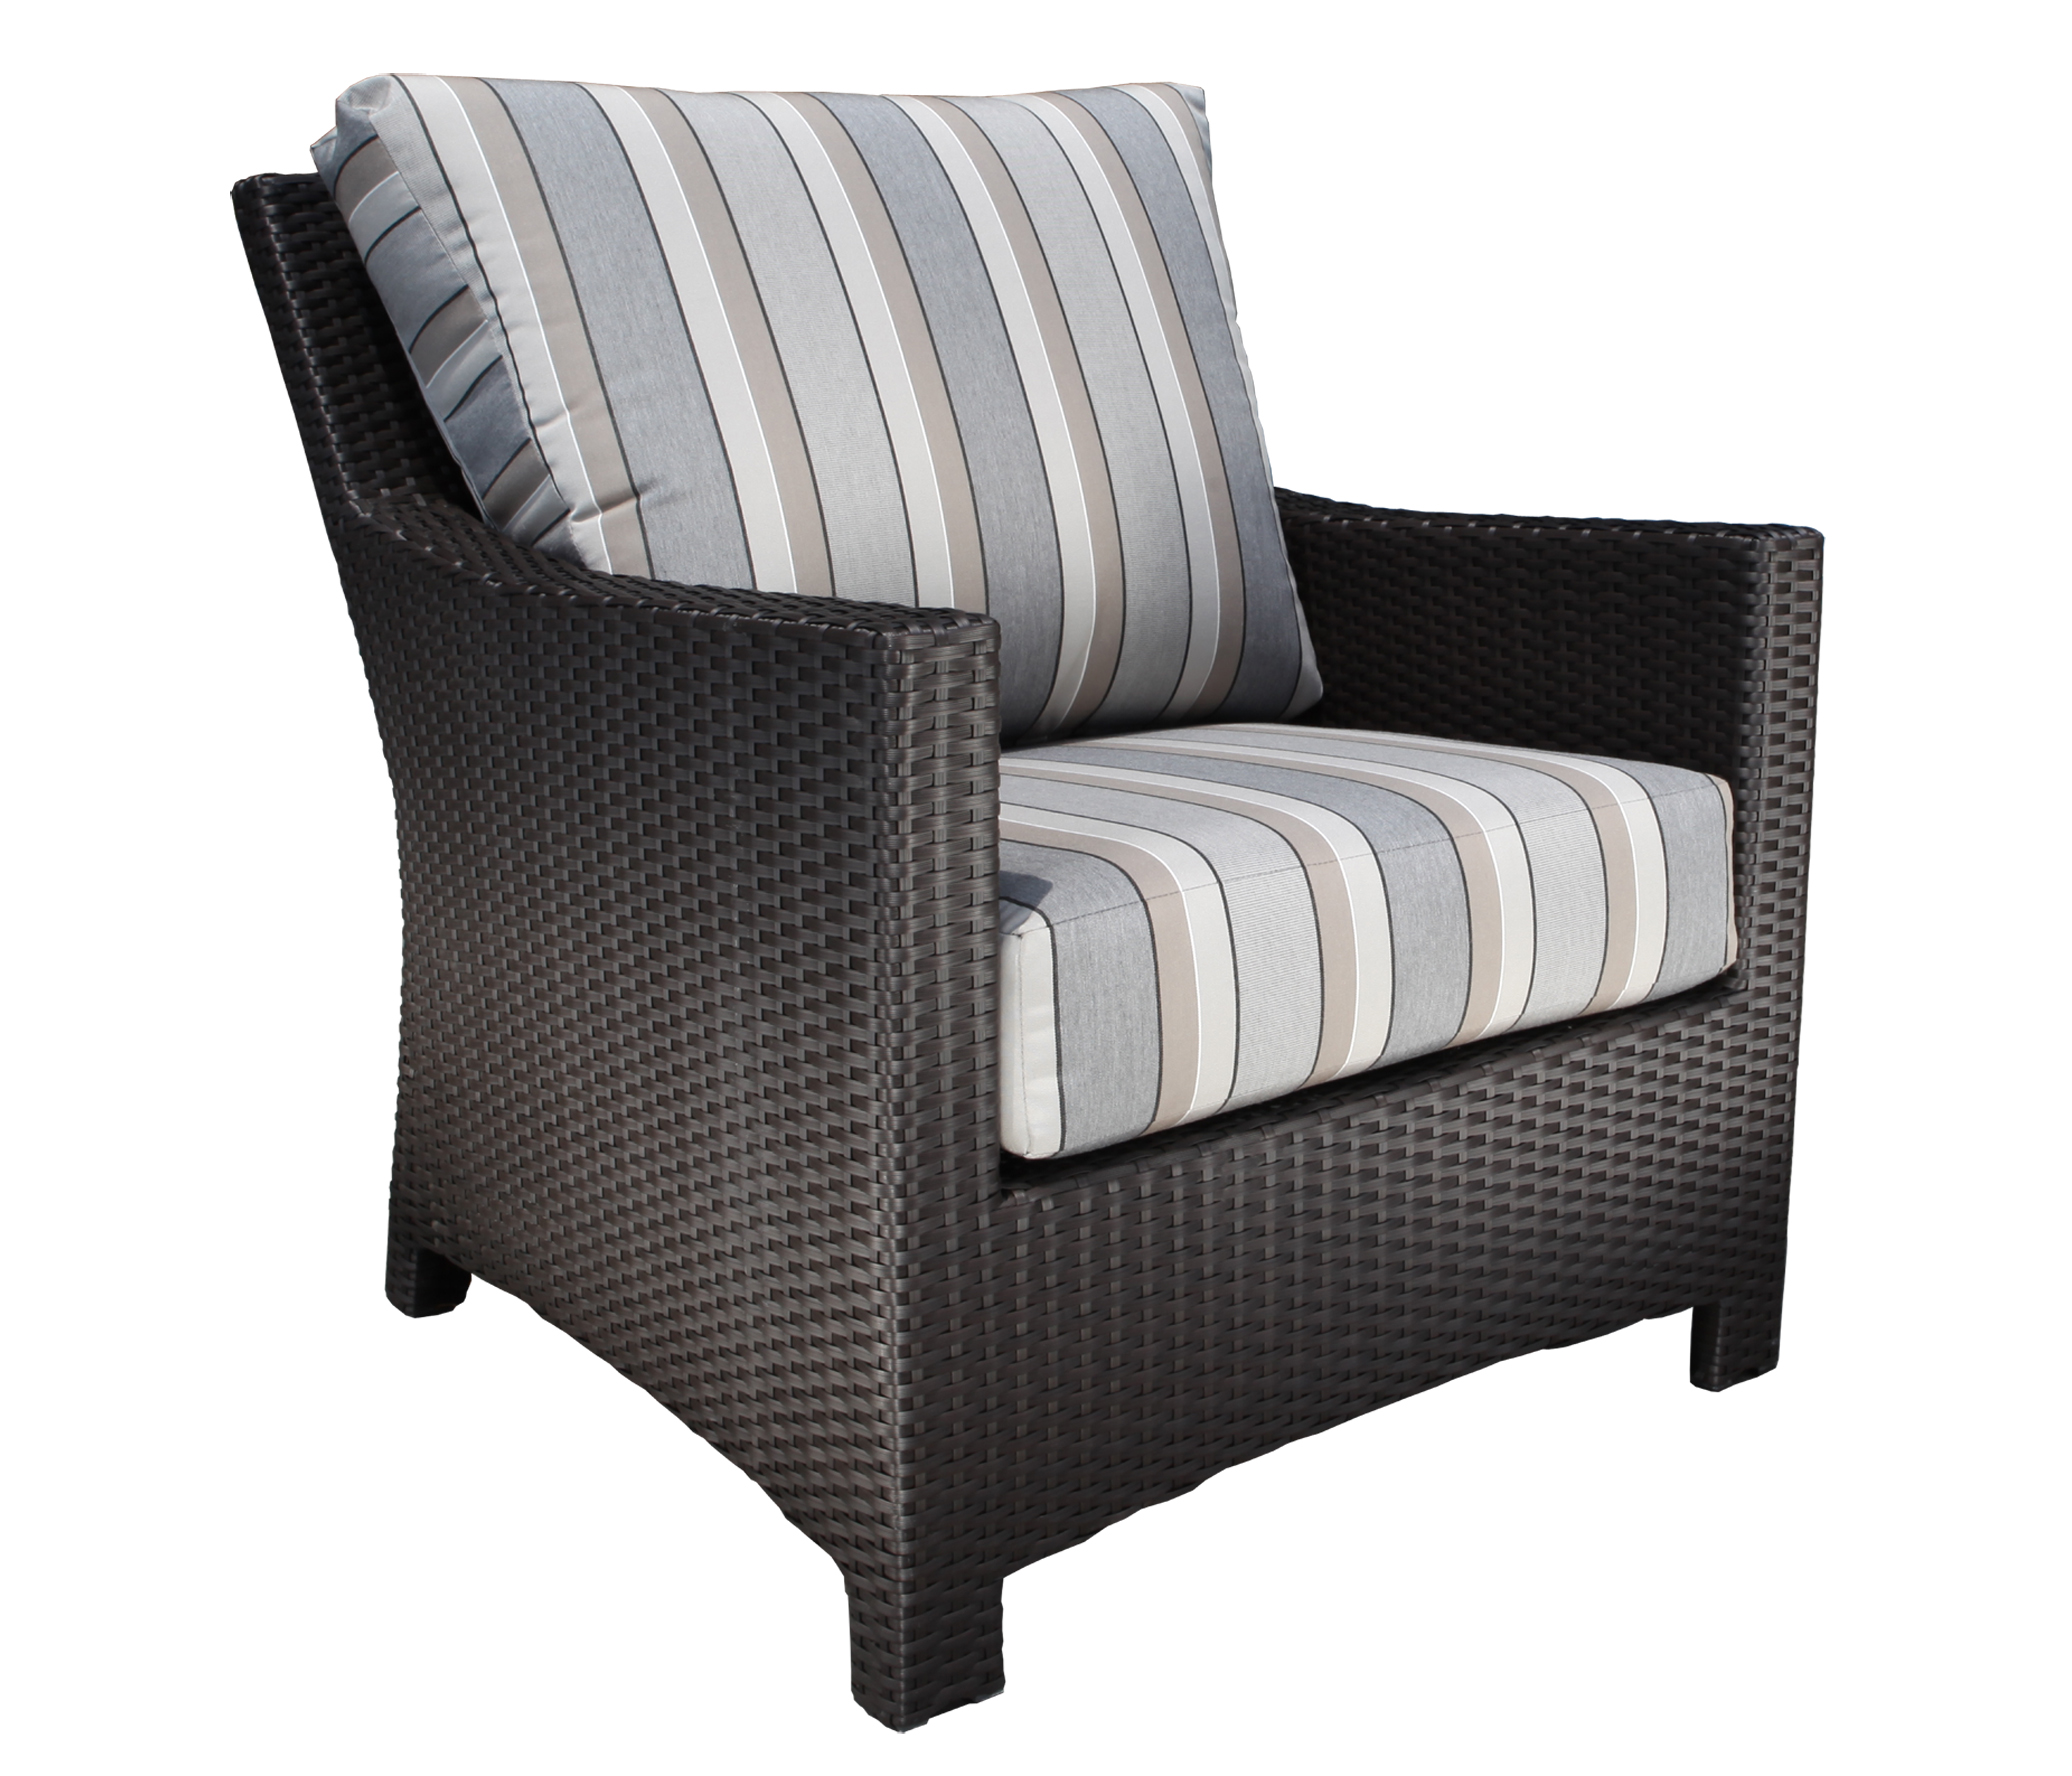 Flight wicker deep seating chair patio furniture at sun for Deep seating outdoor furniture